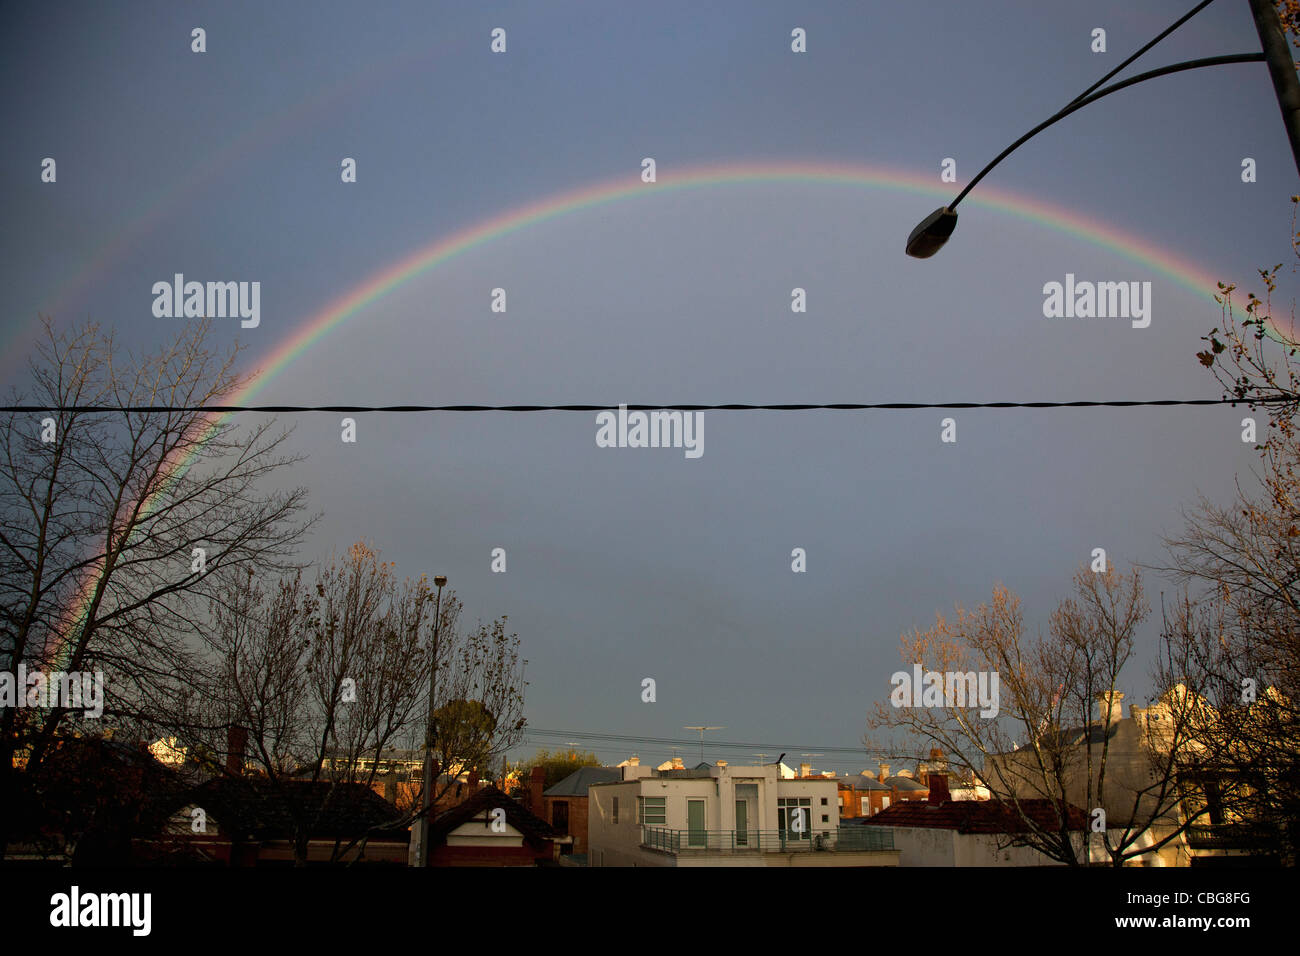 A double rainbow over a city - Stock Image